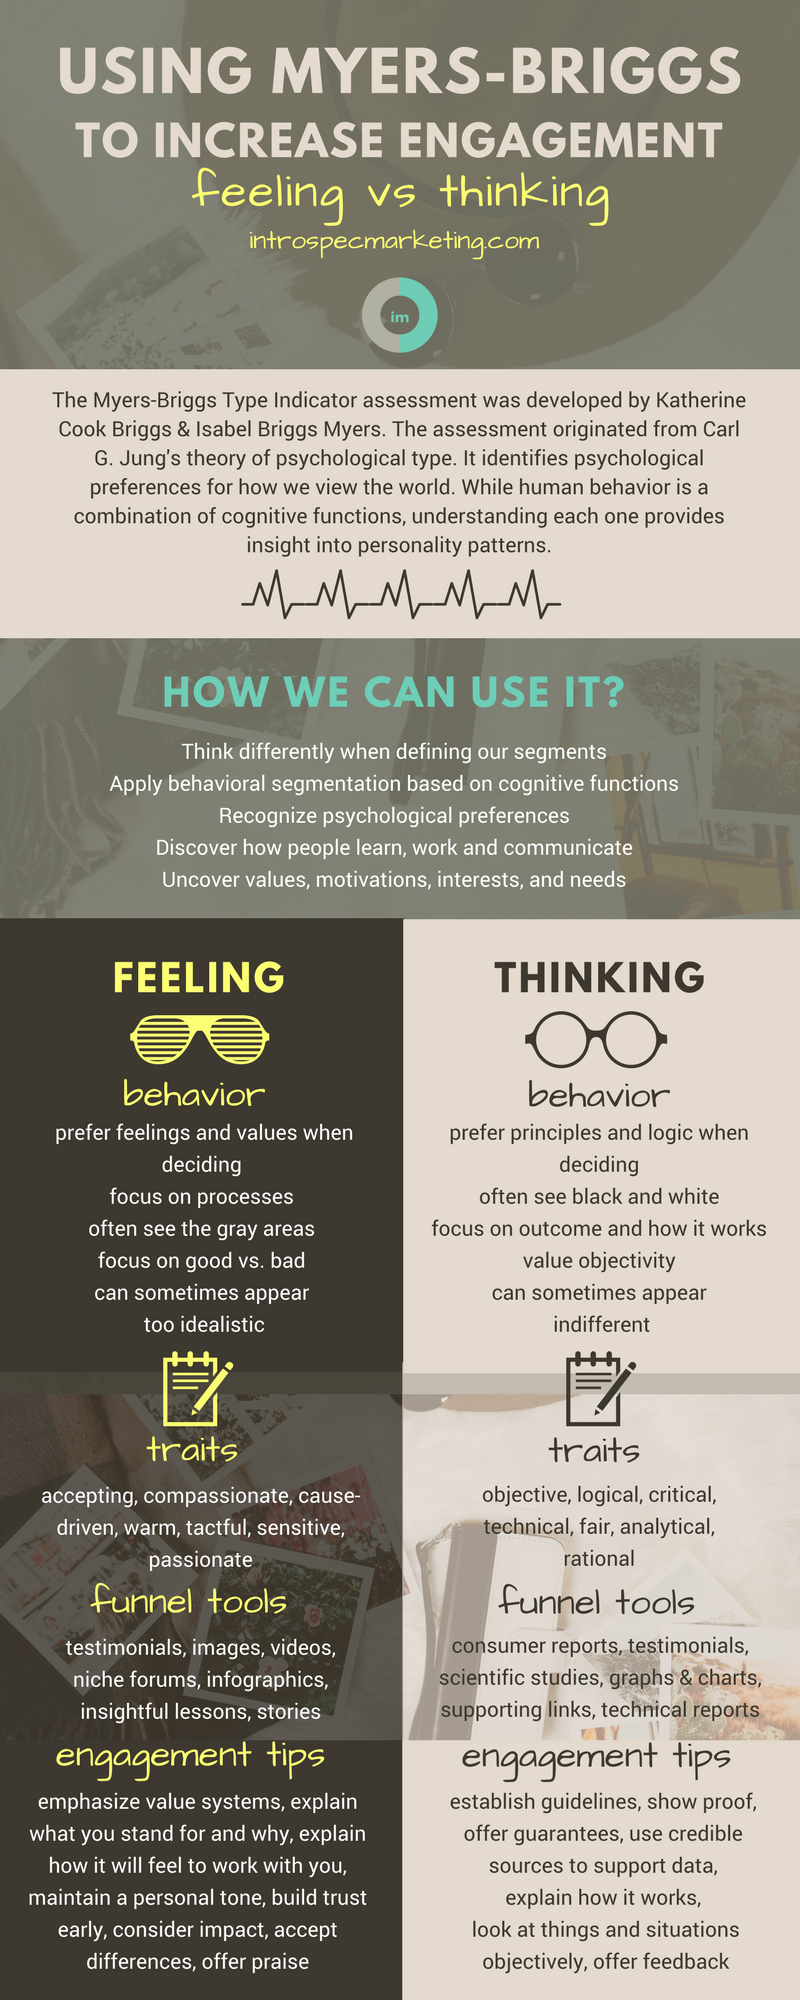 Using Myers-Briggs to Increase Engagement: Feeling vs Thinking